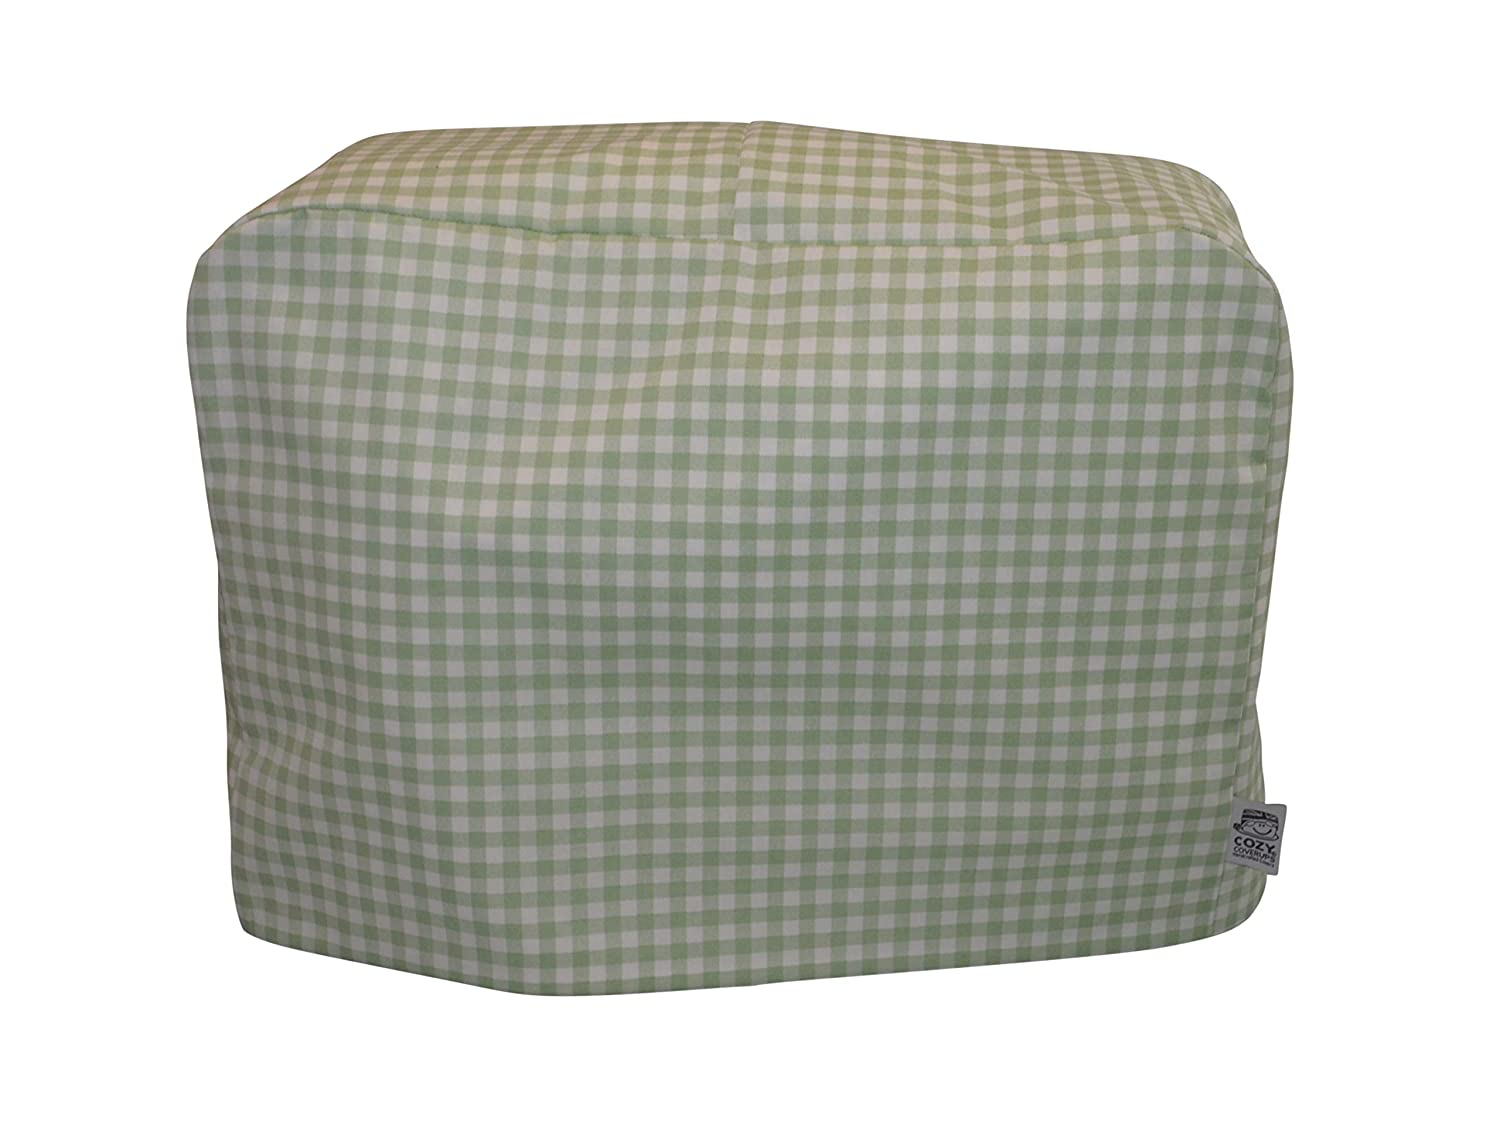 CozyCoverUp® Handmade Sewing Machine Dust Cover in Green Gingham CoolCozy Covers